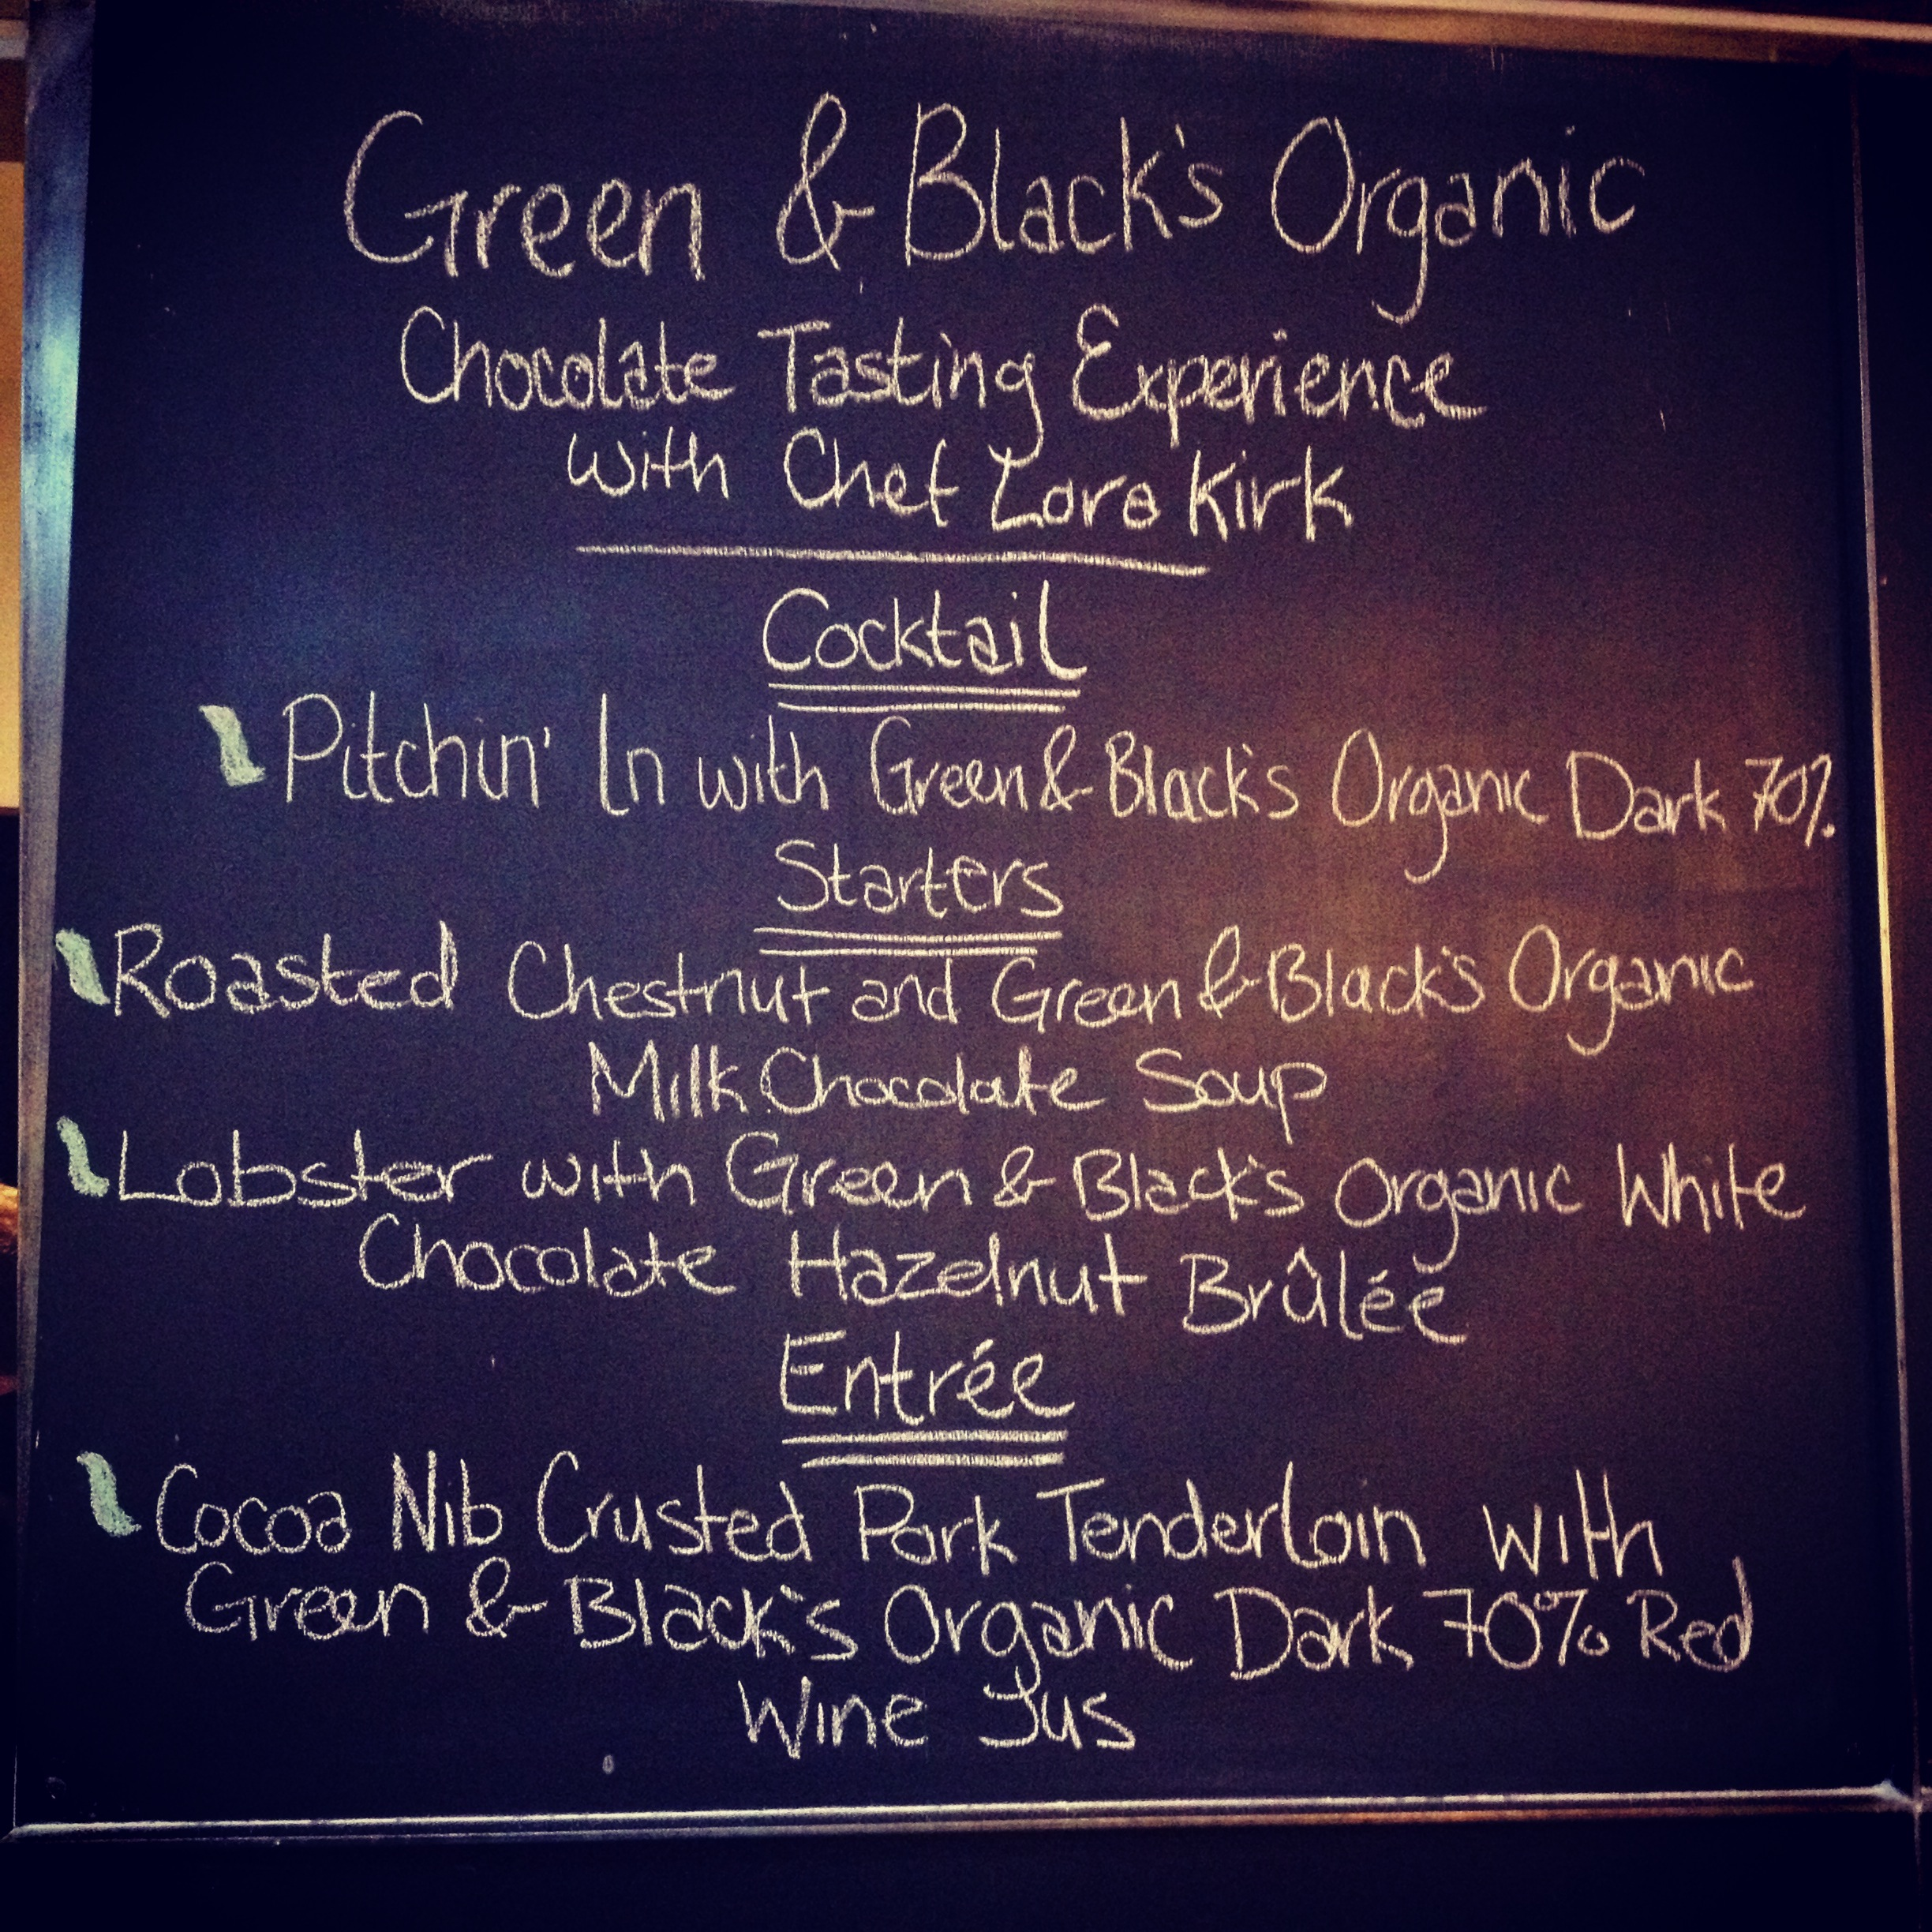 New Chocolate Flavours from Green & Black's Organic